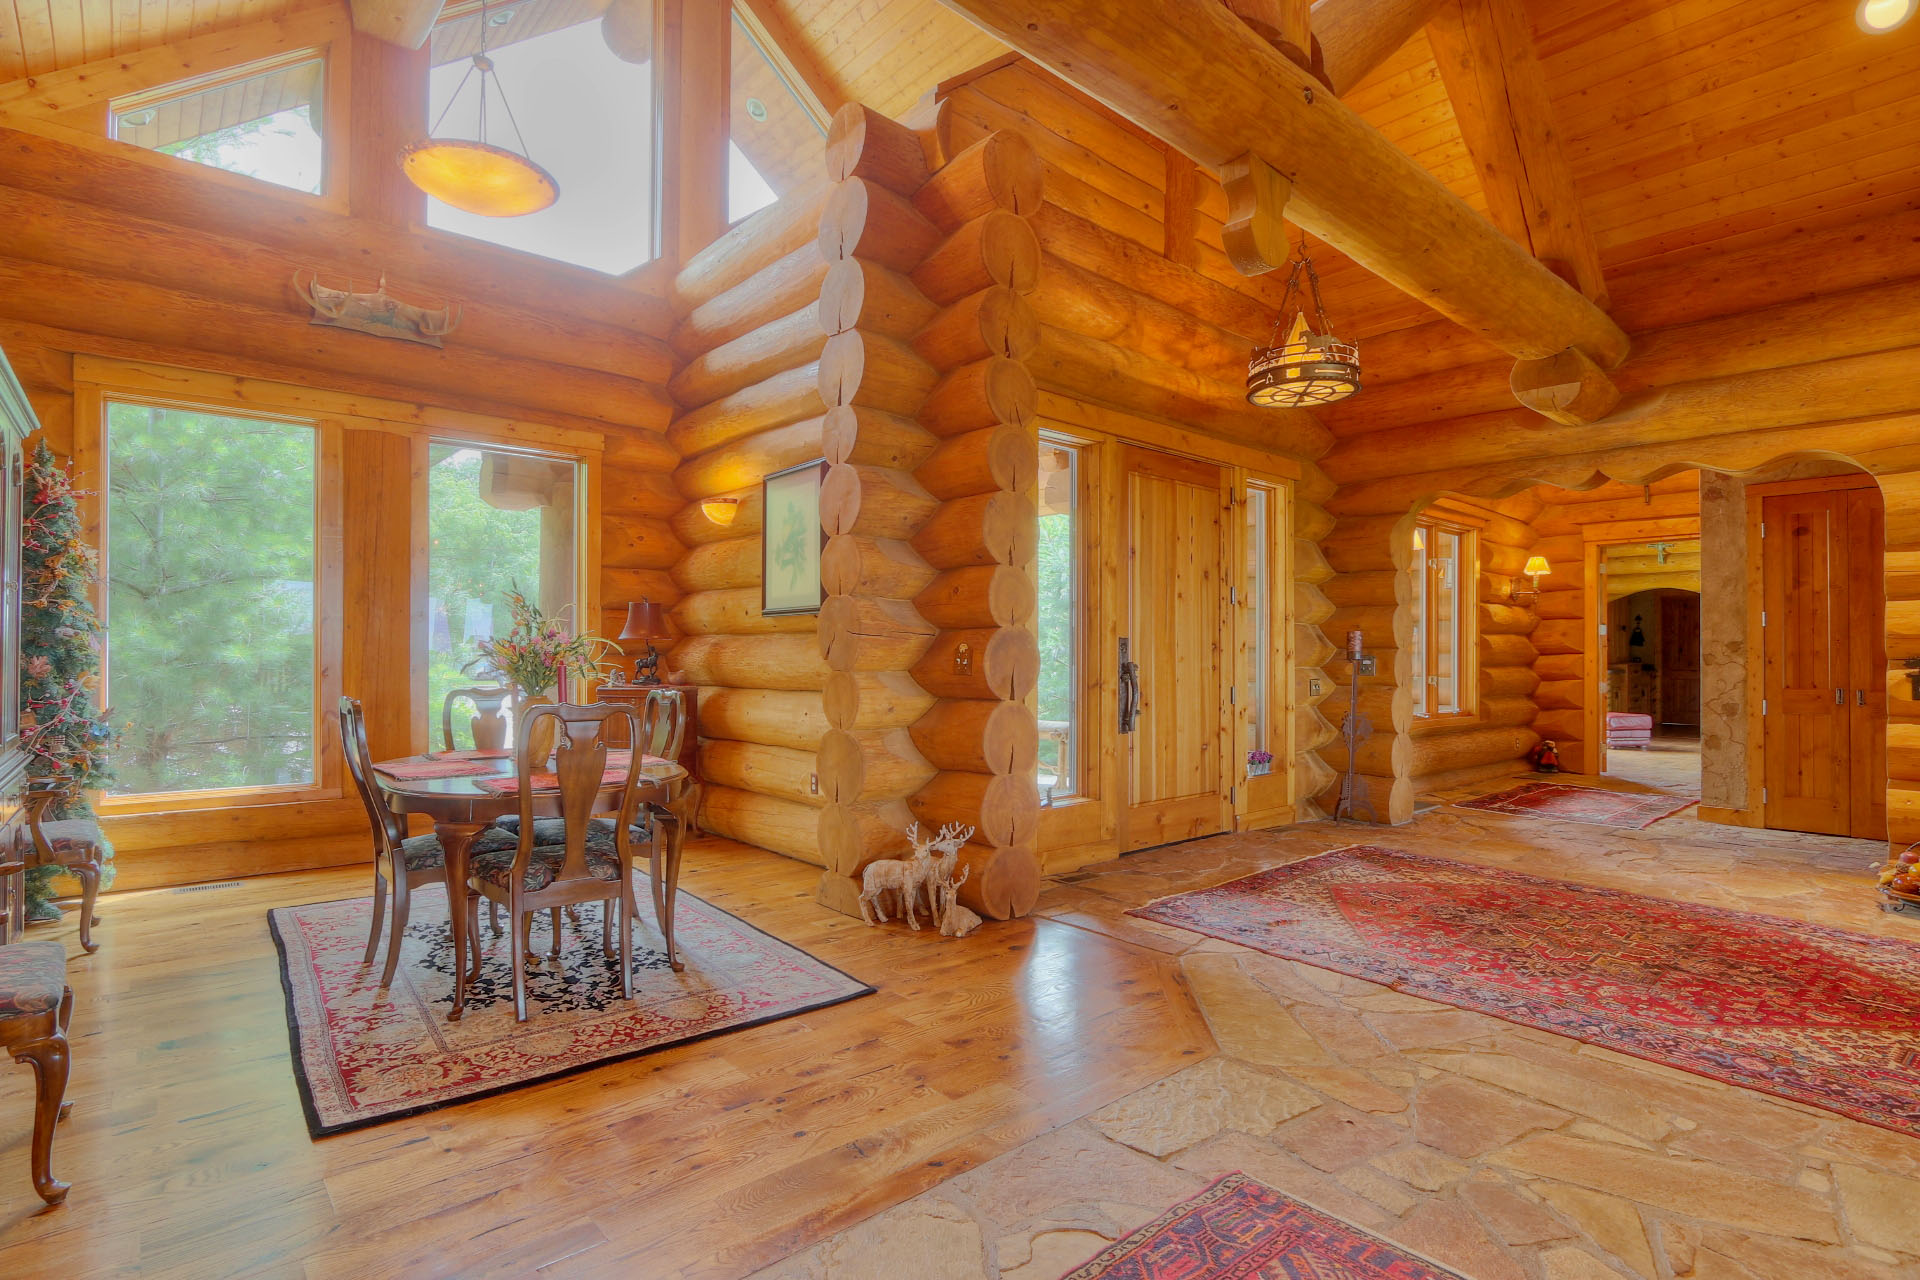 Log home photo gallery north american log crafters for House inside images